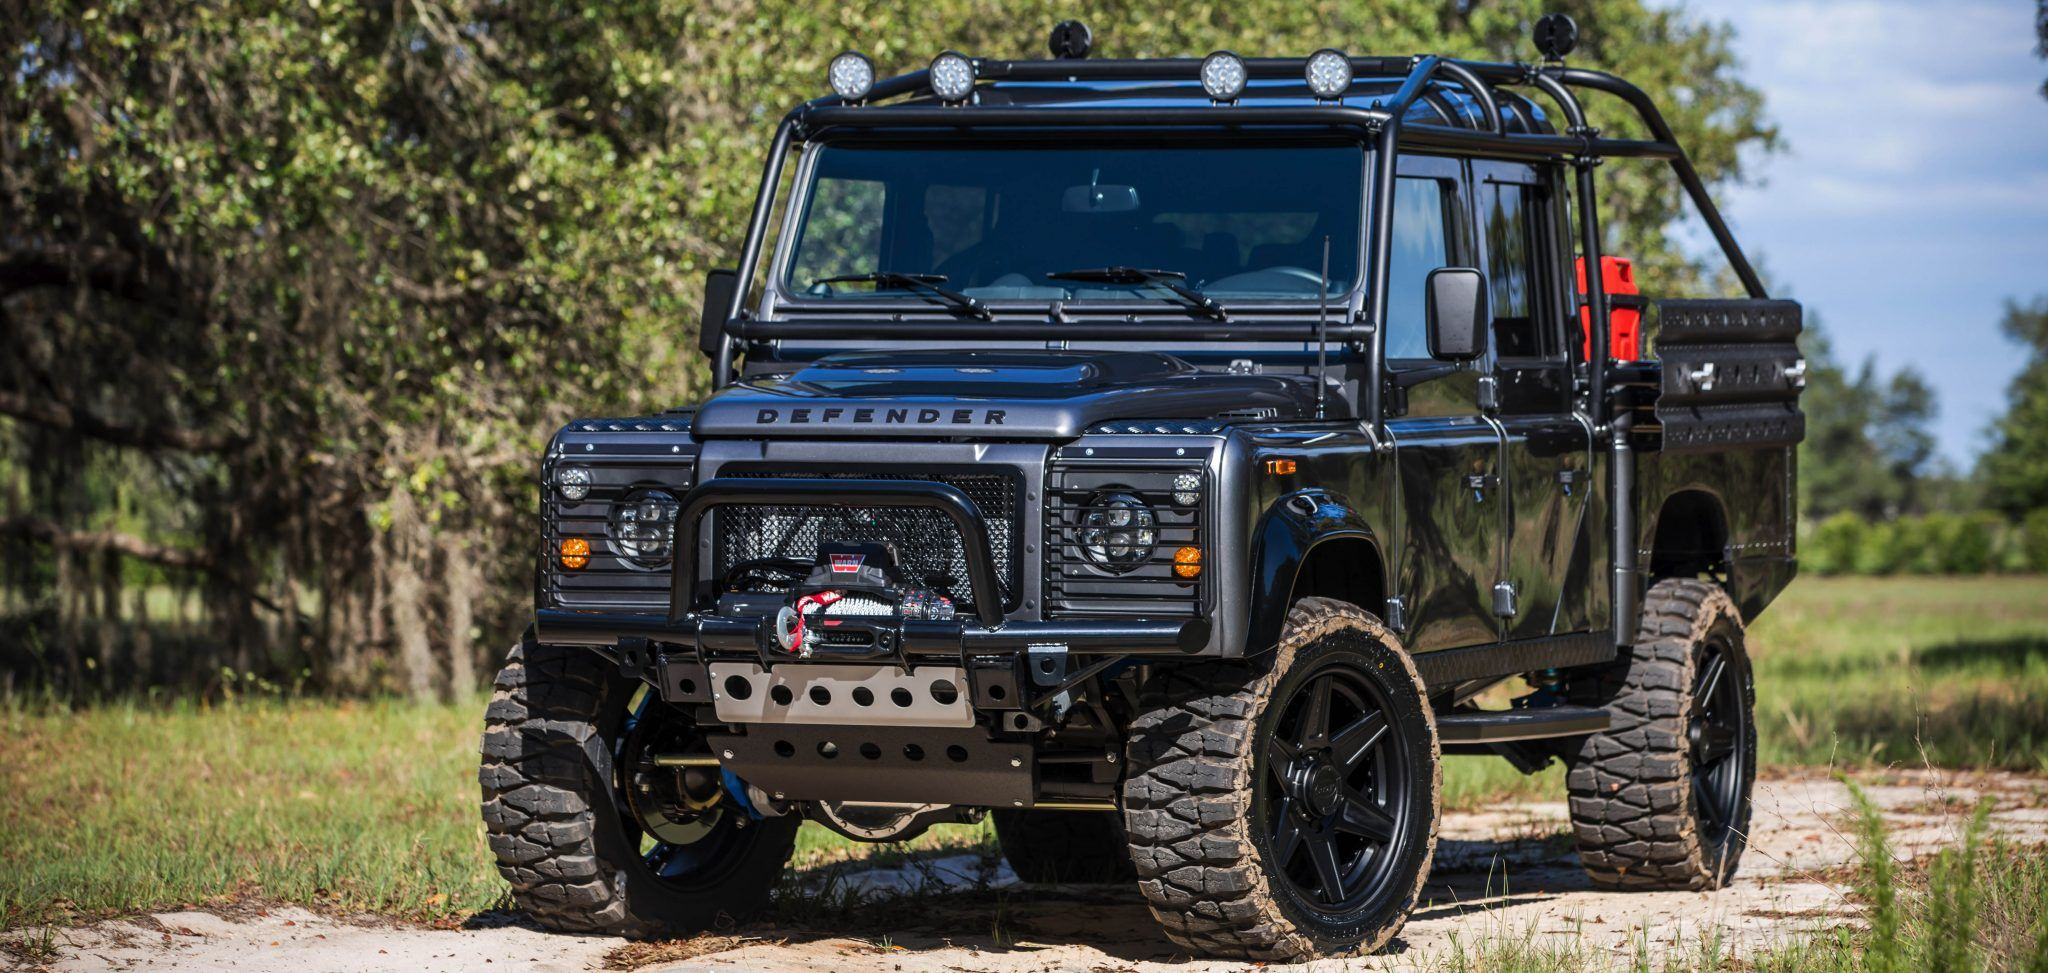 Ecd Automotive Design Build Your Custom Defender Today Land Rover Defender Land Rover Range Rover Classic